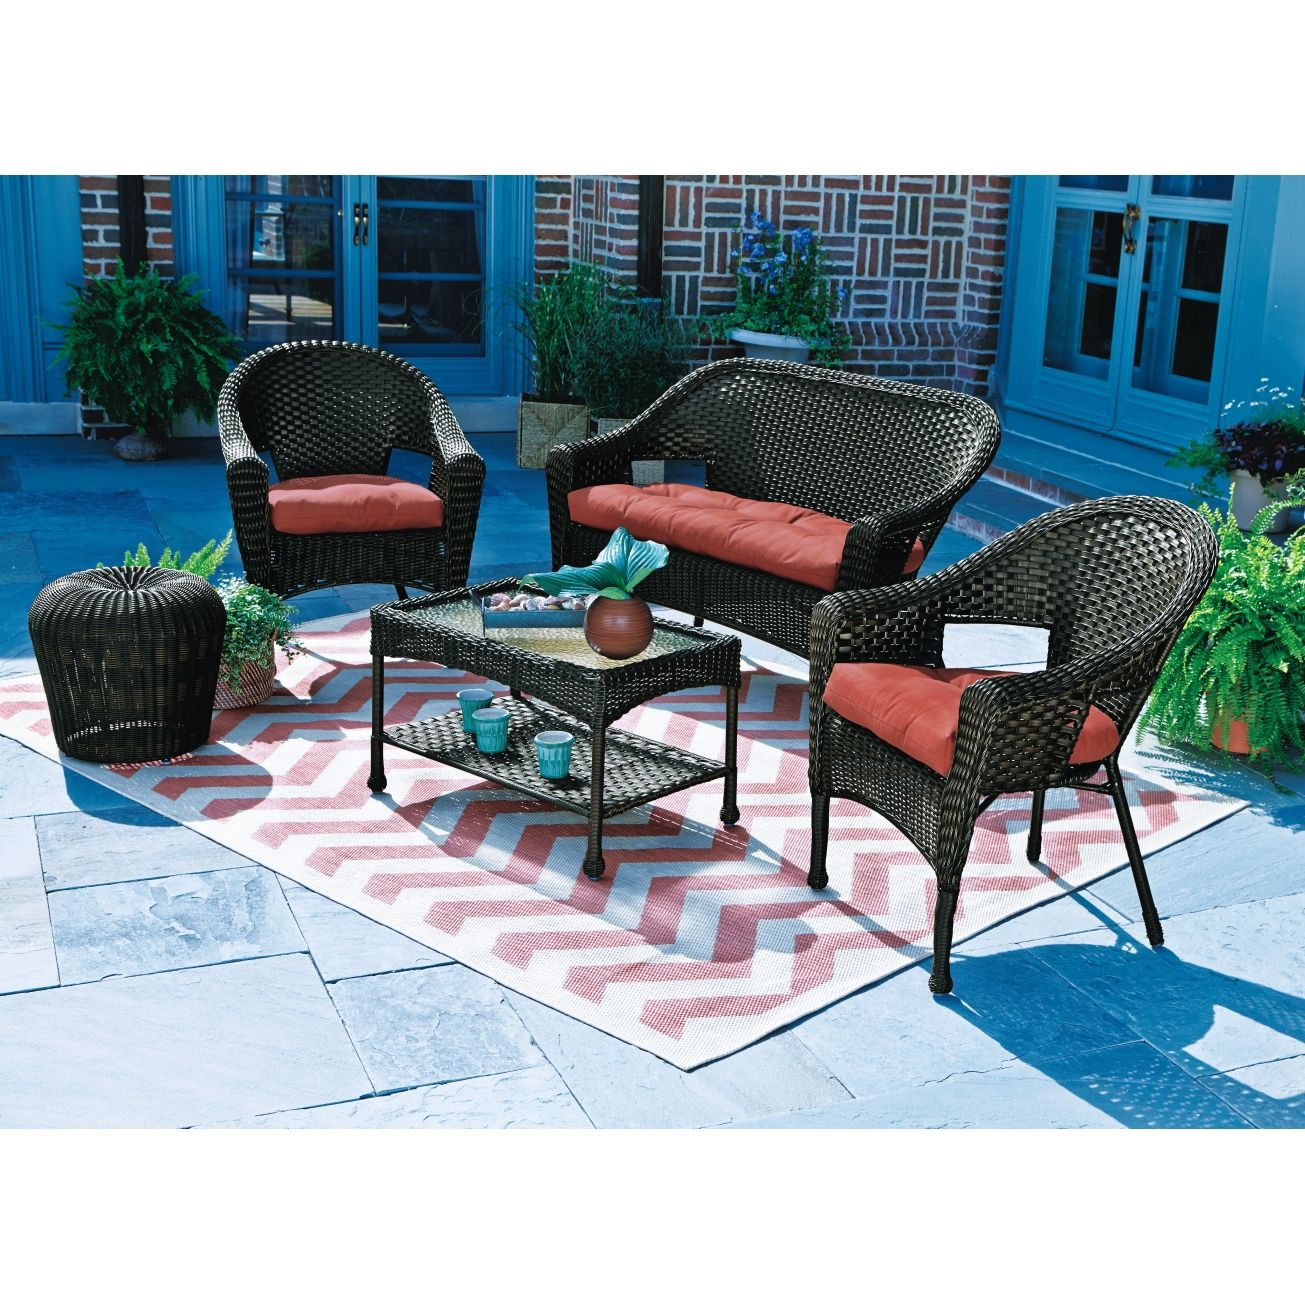 Living Accents Verona Stackable Wicker Chair - Deep ... on Living Accents Patio id=84851